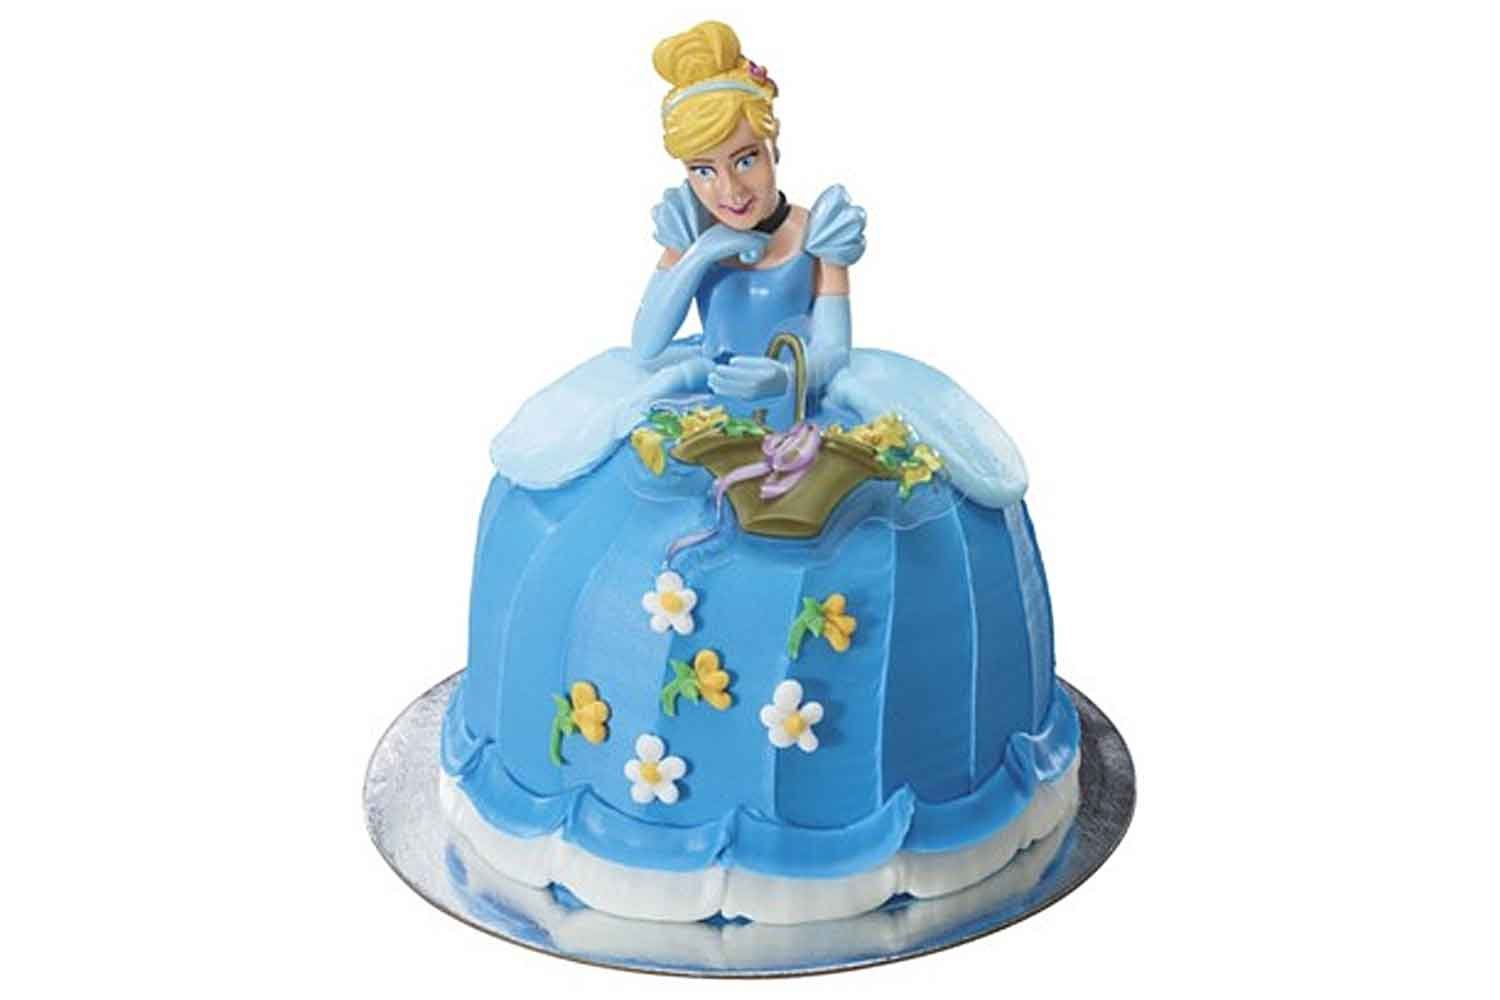 Cake Topper Disney Princess : Disney Princess Cake Decorations Birthday Girls Wikii